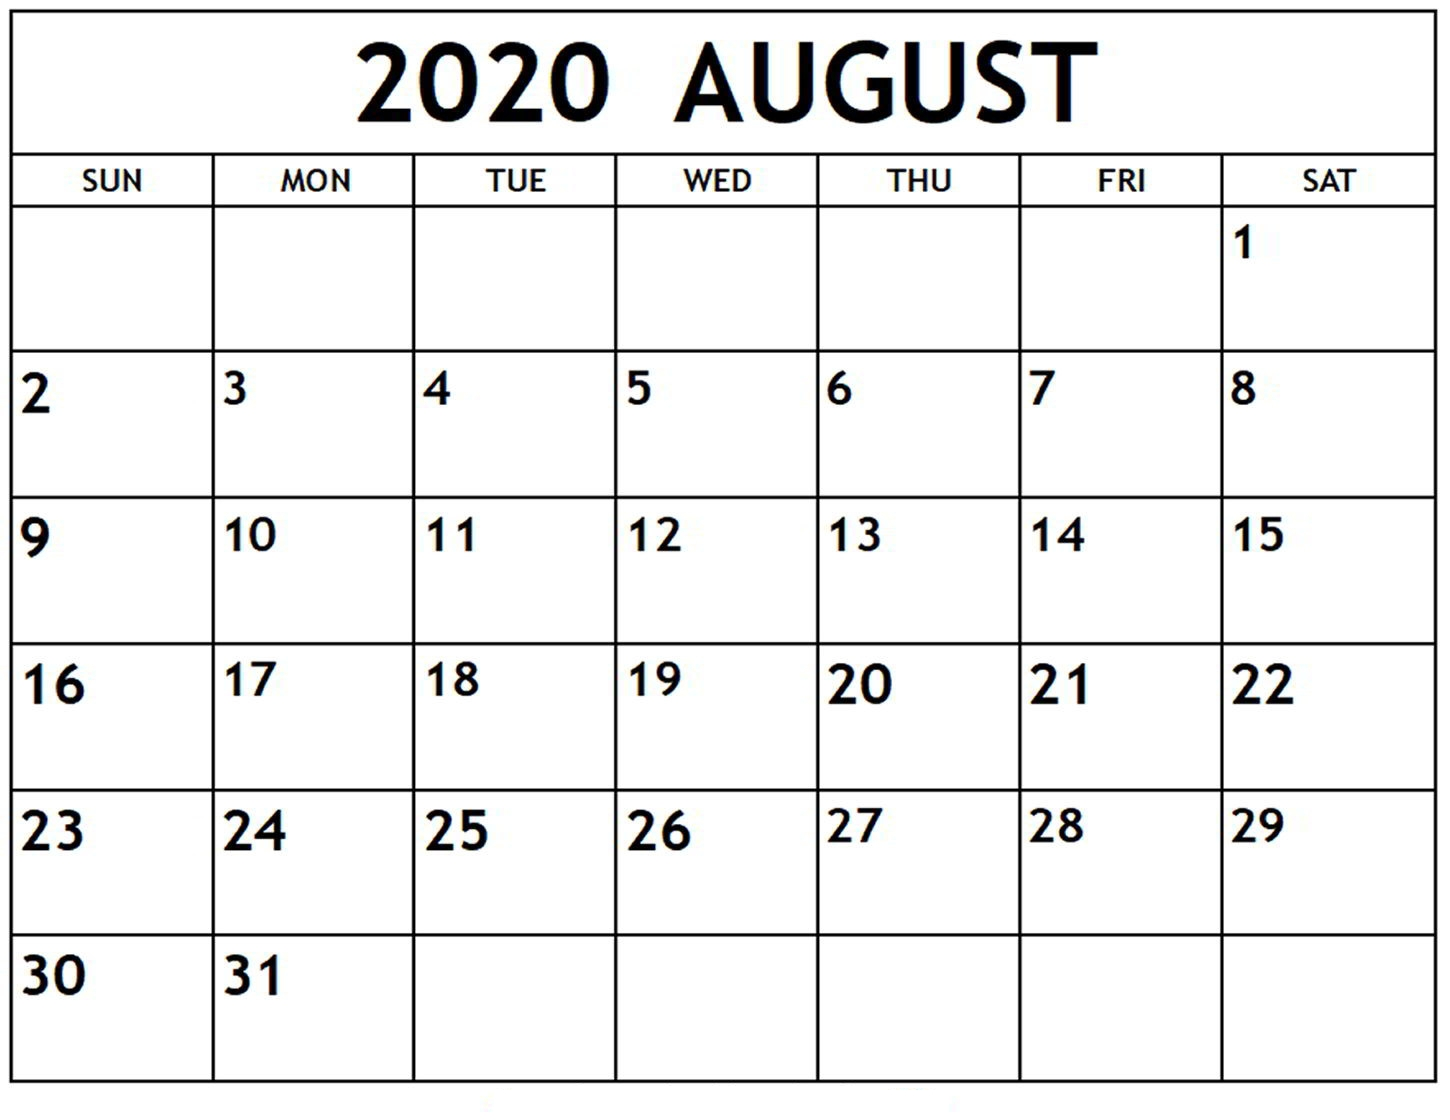 Online August 2020 Calendar Printable Usa School Holidays-Printable Blank Monthly Calendar 2020 August